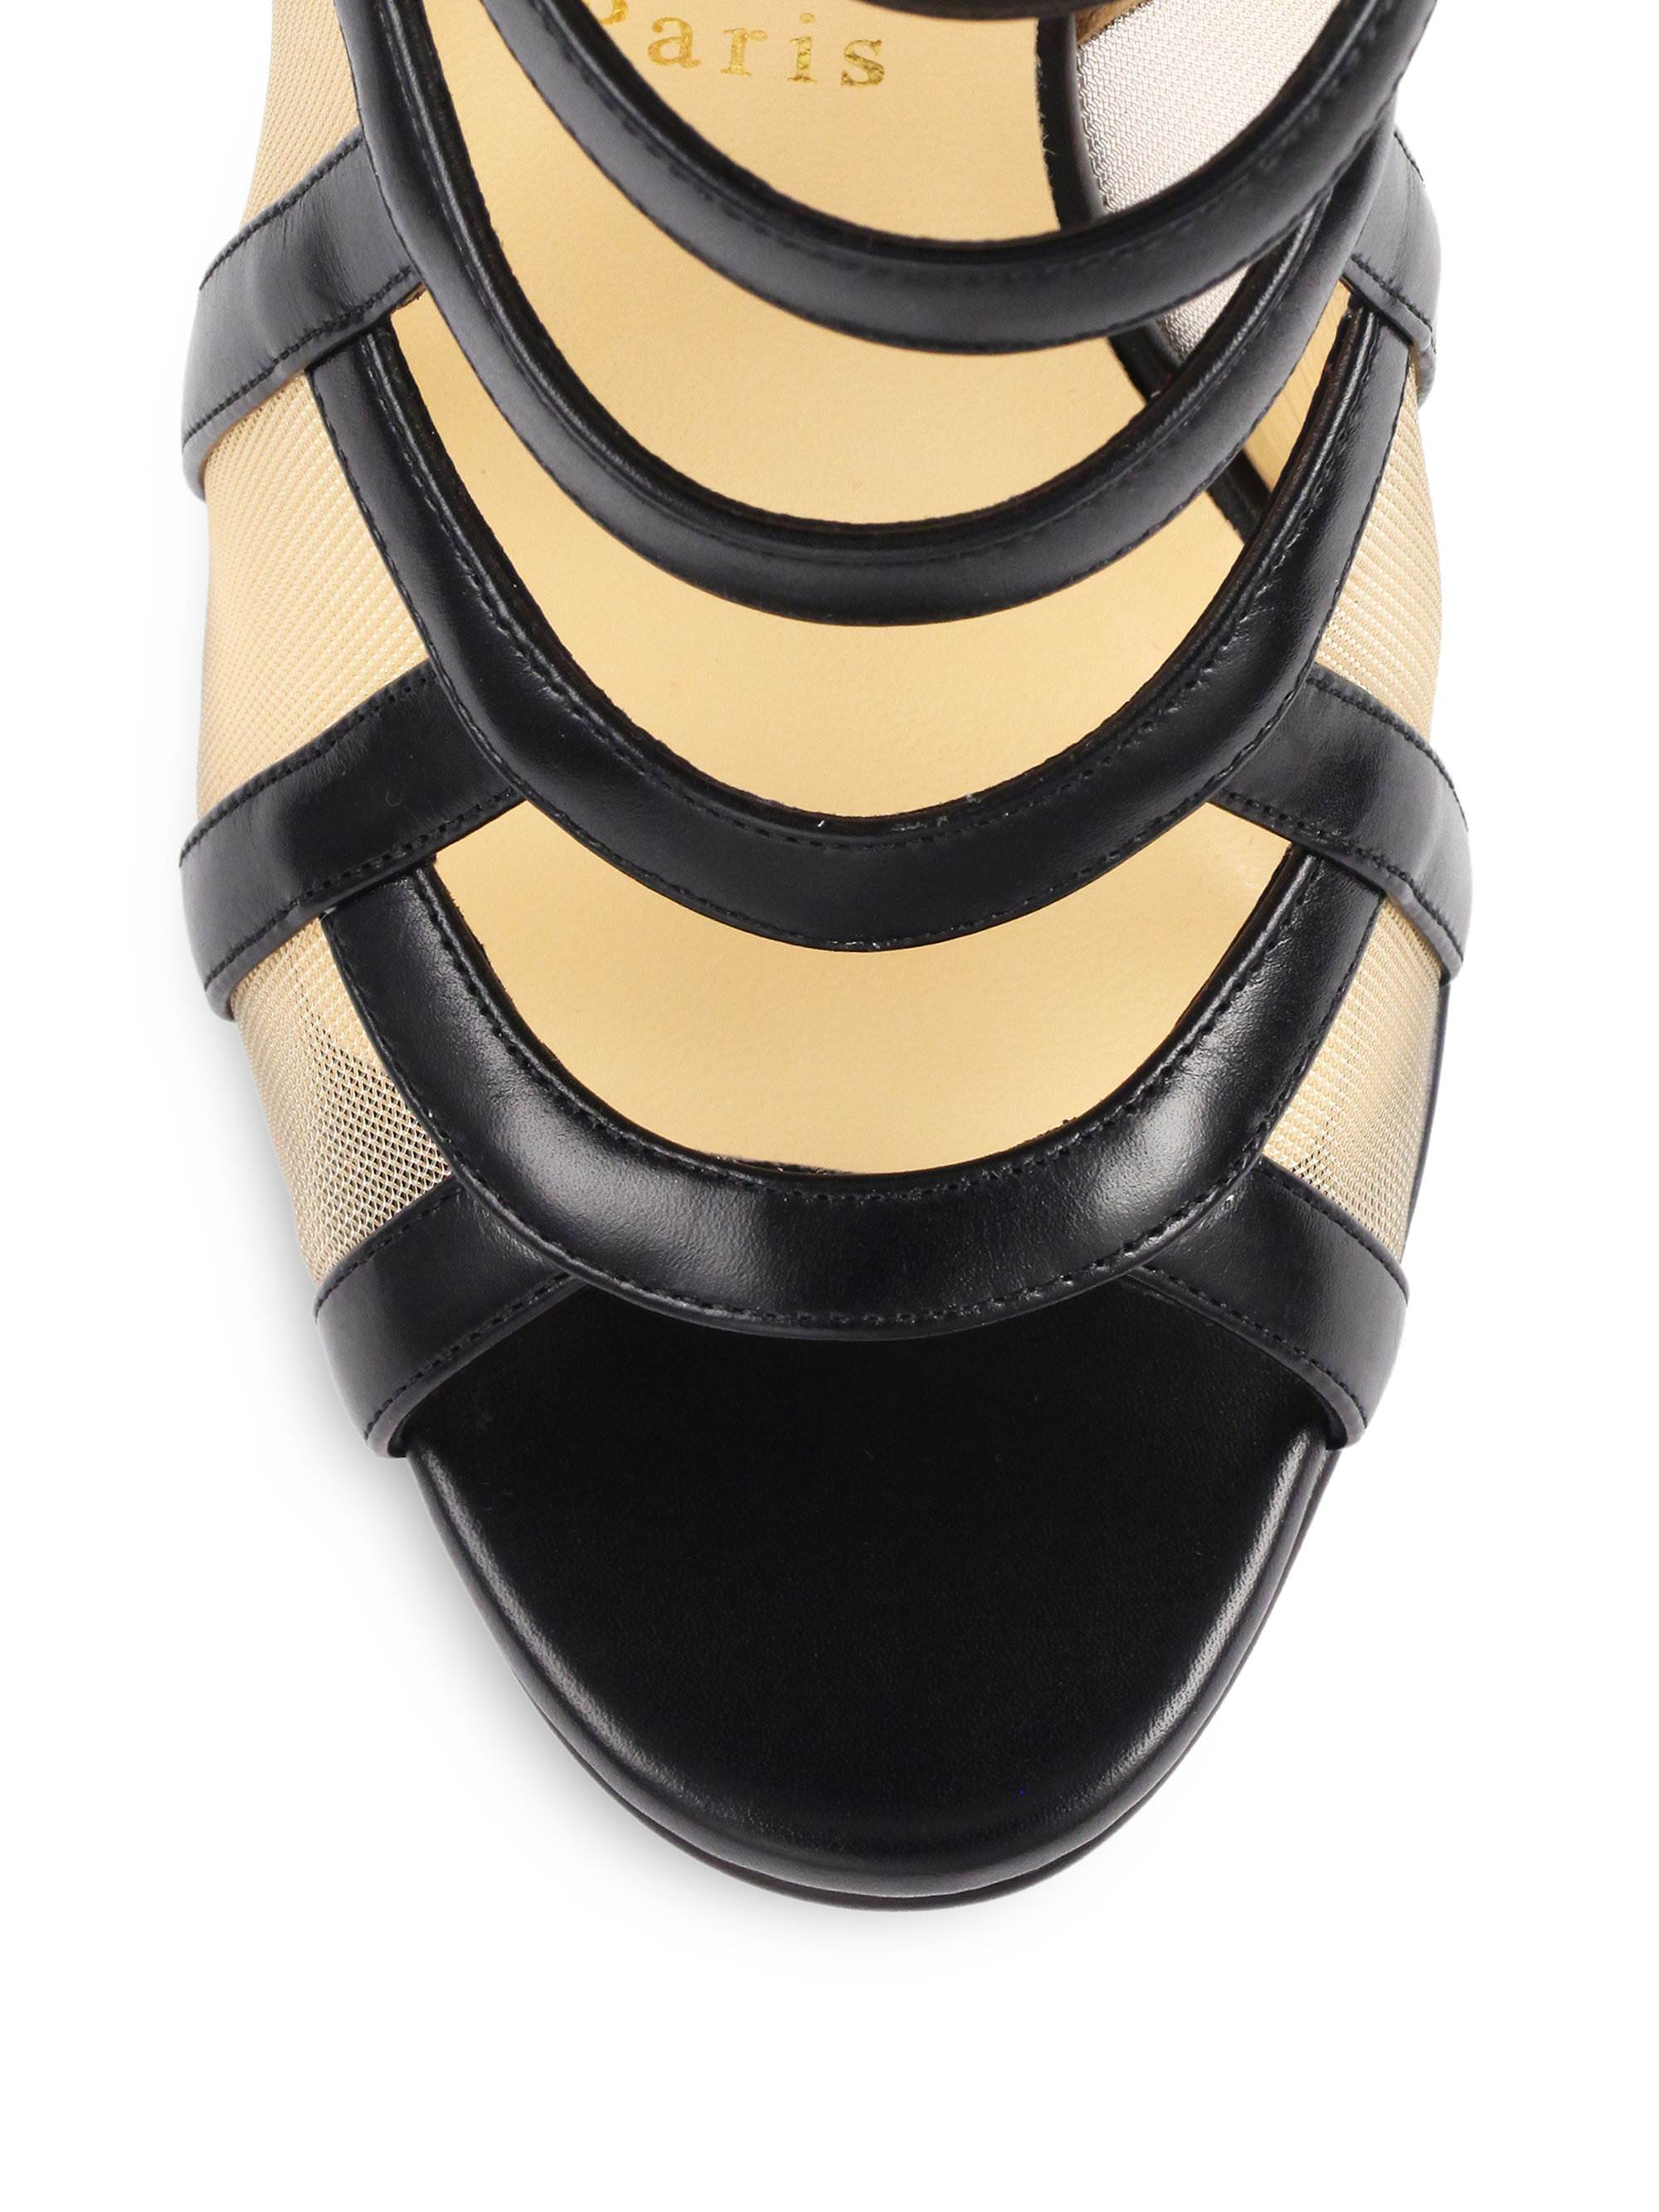 christian louboutin suede cage sandals | cosmetics digital ...